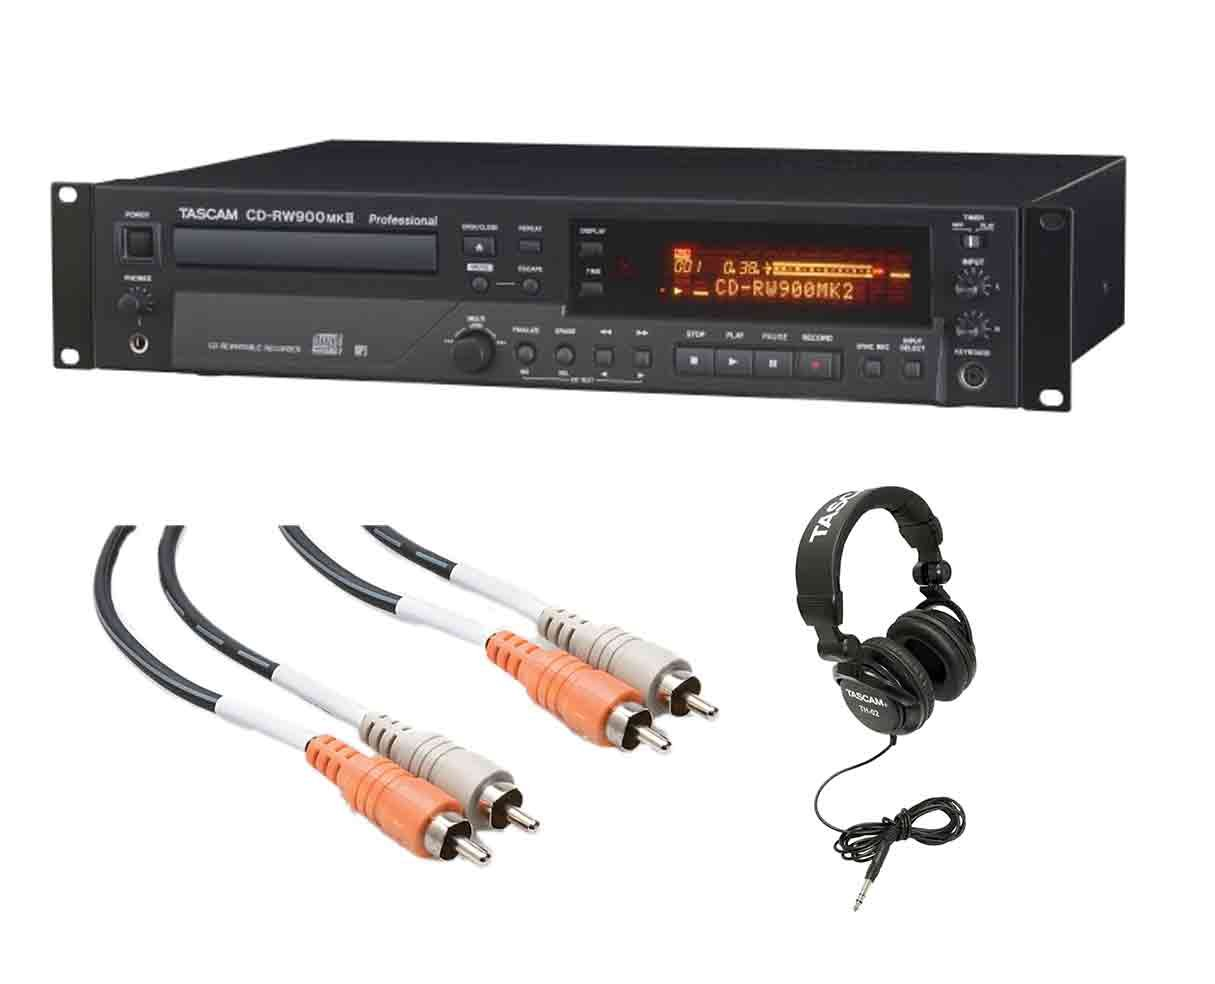 Buy TASCAM CD-RW900mkII Professional CD Recorder in Cheap